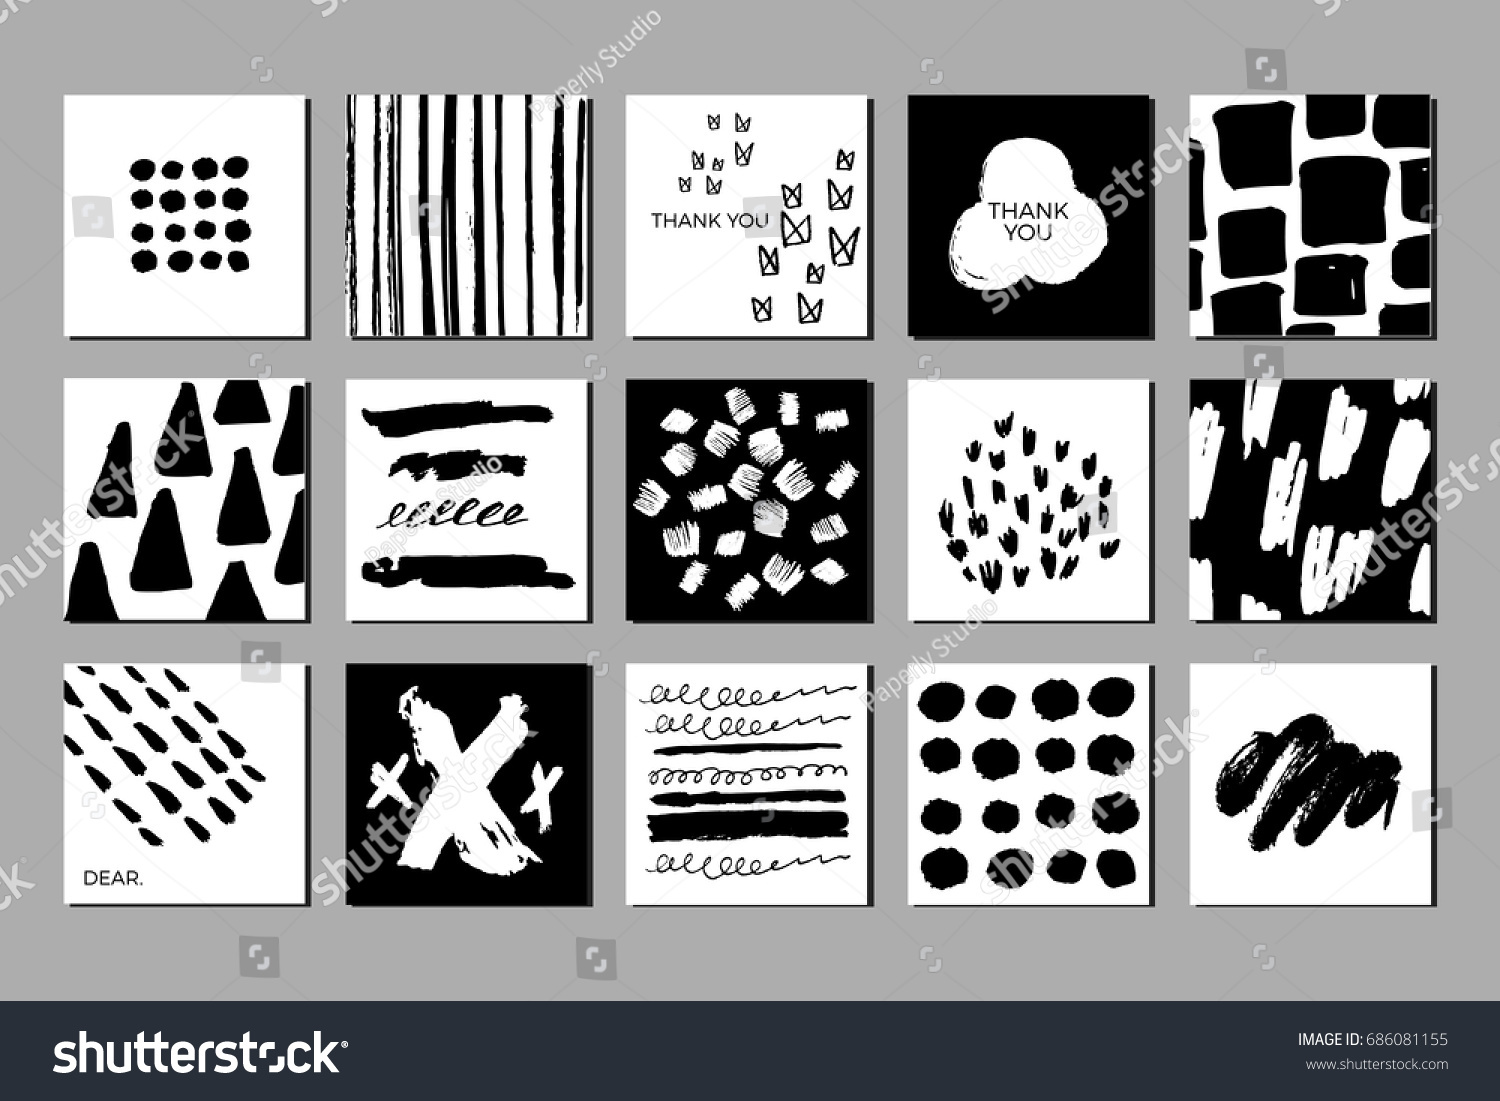 Doodled Creative Black White Greeting Cards Stock Vector 686081155